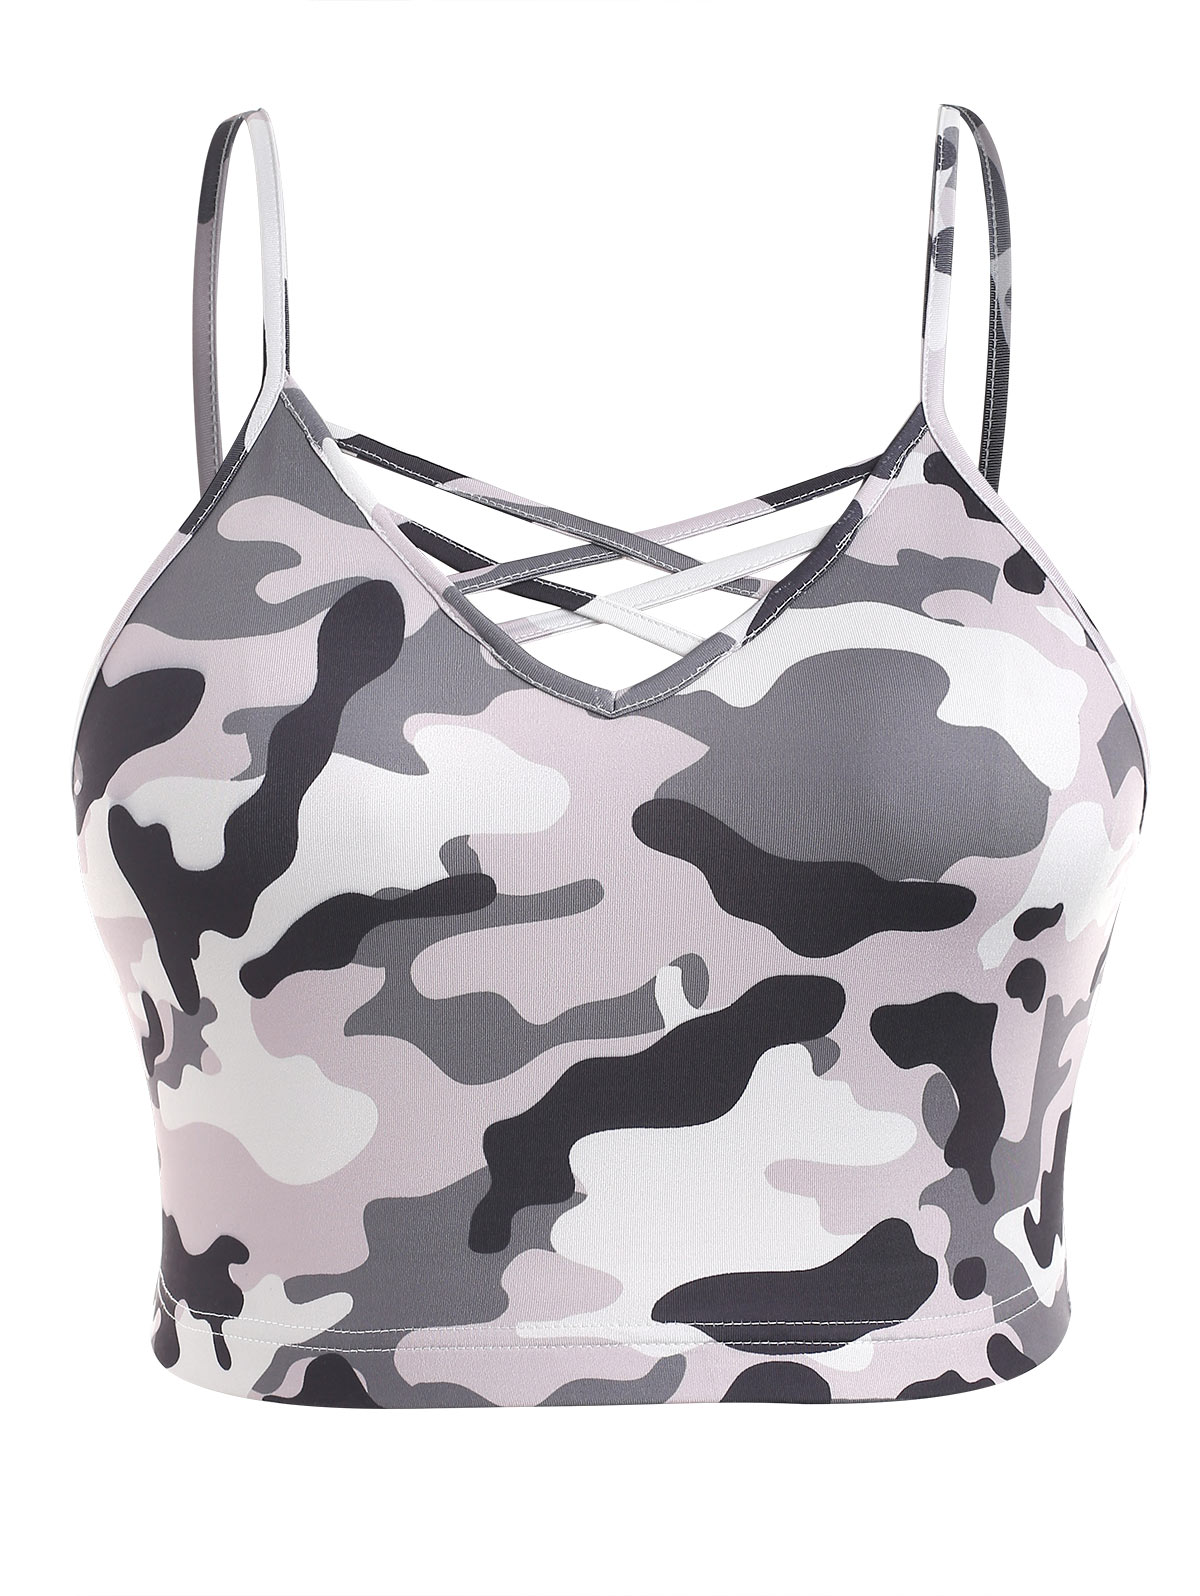 7613a3d1b NEW Camouflage Sports Bra Plus Size Lady Straps Gym High Impact ...